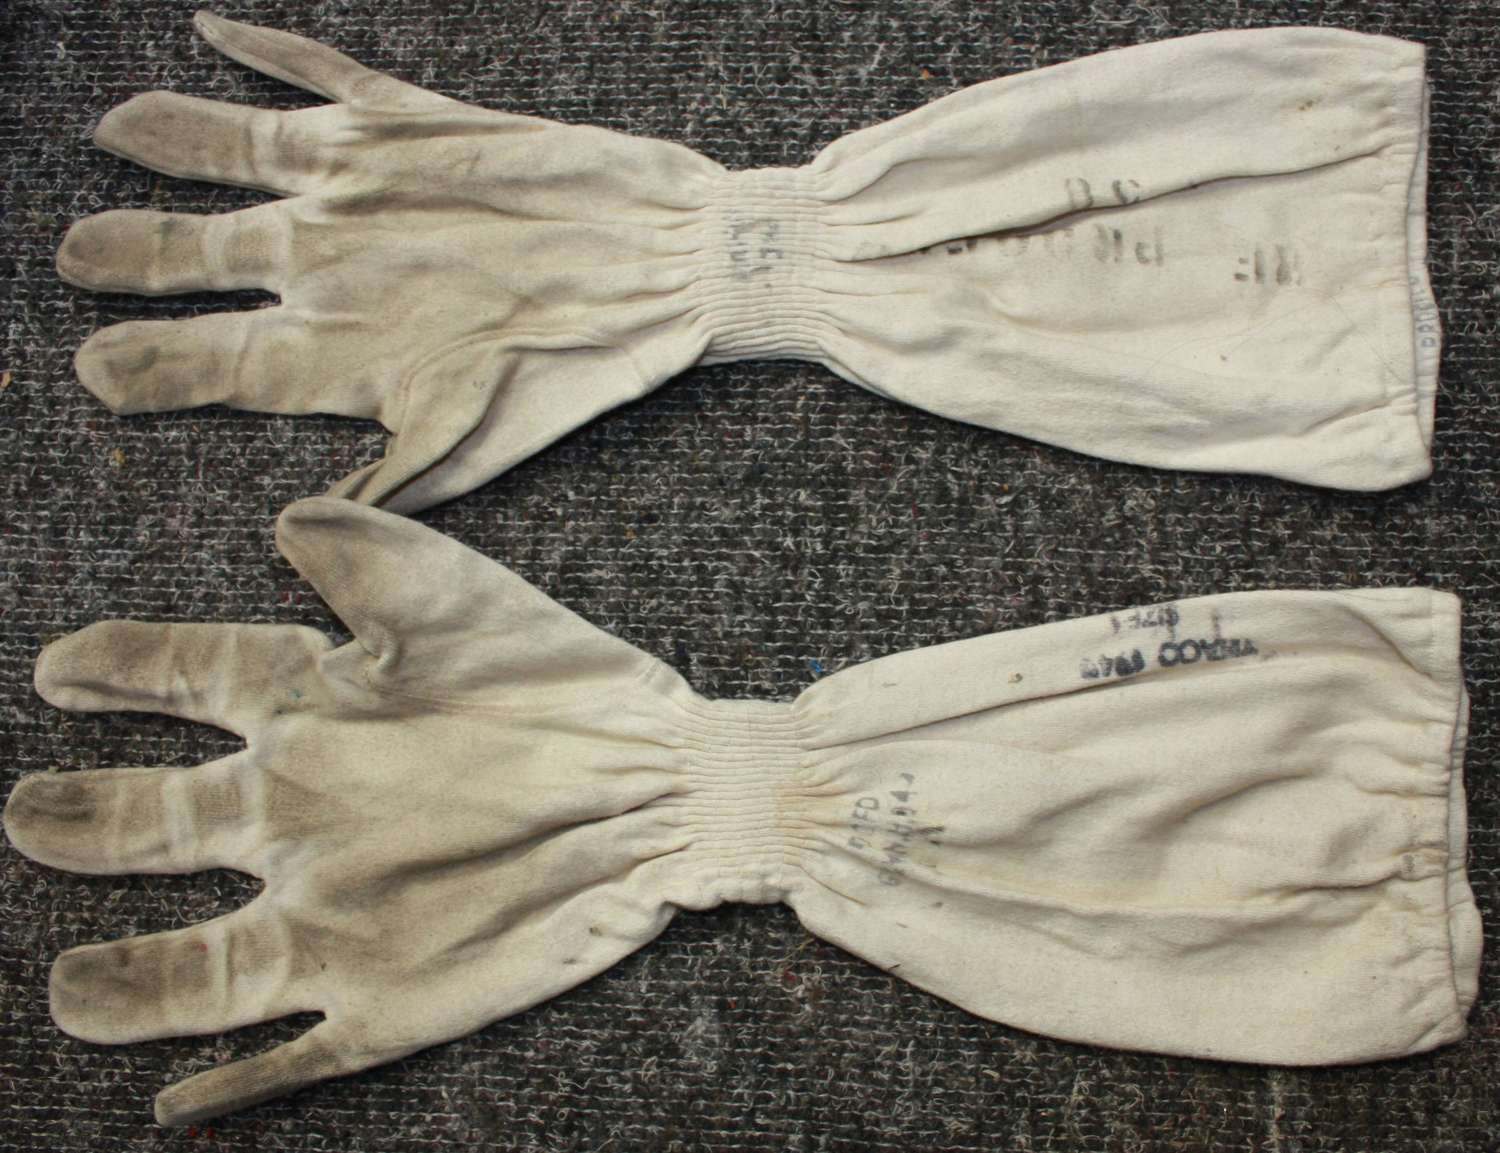 A 1945 DATED RN FLASH GLOVES AND HEAD COVER